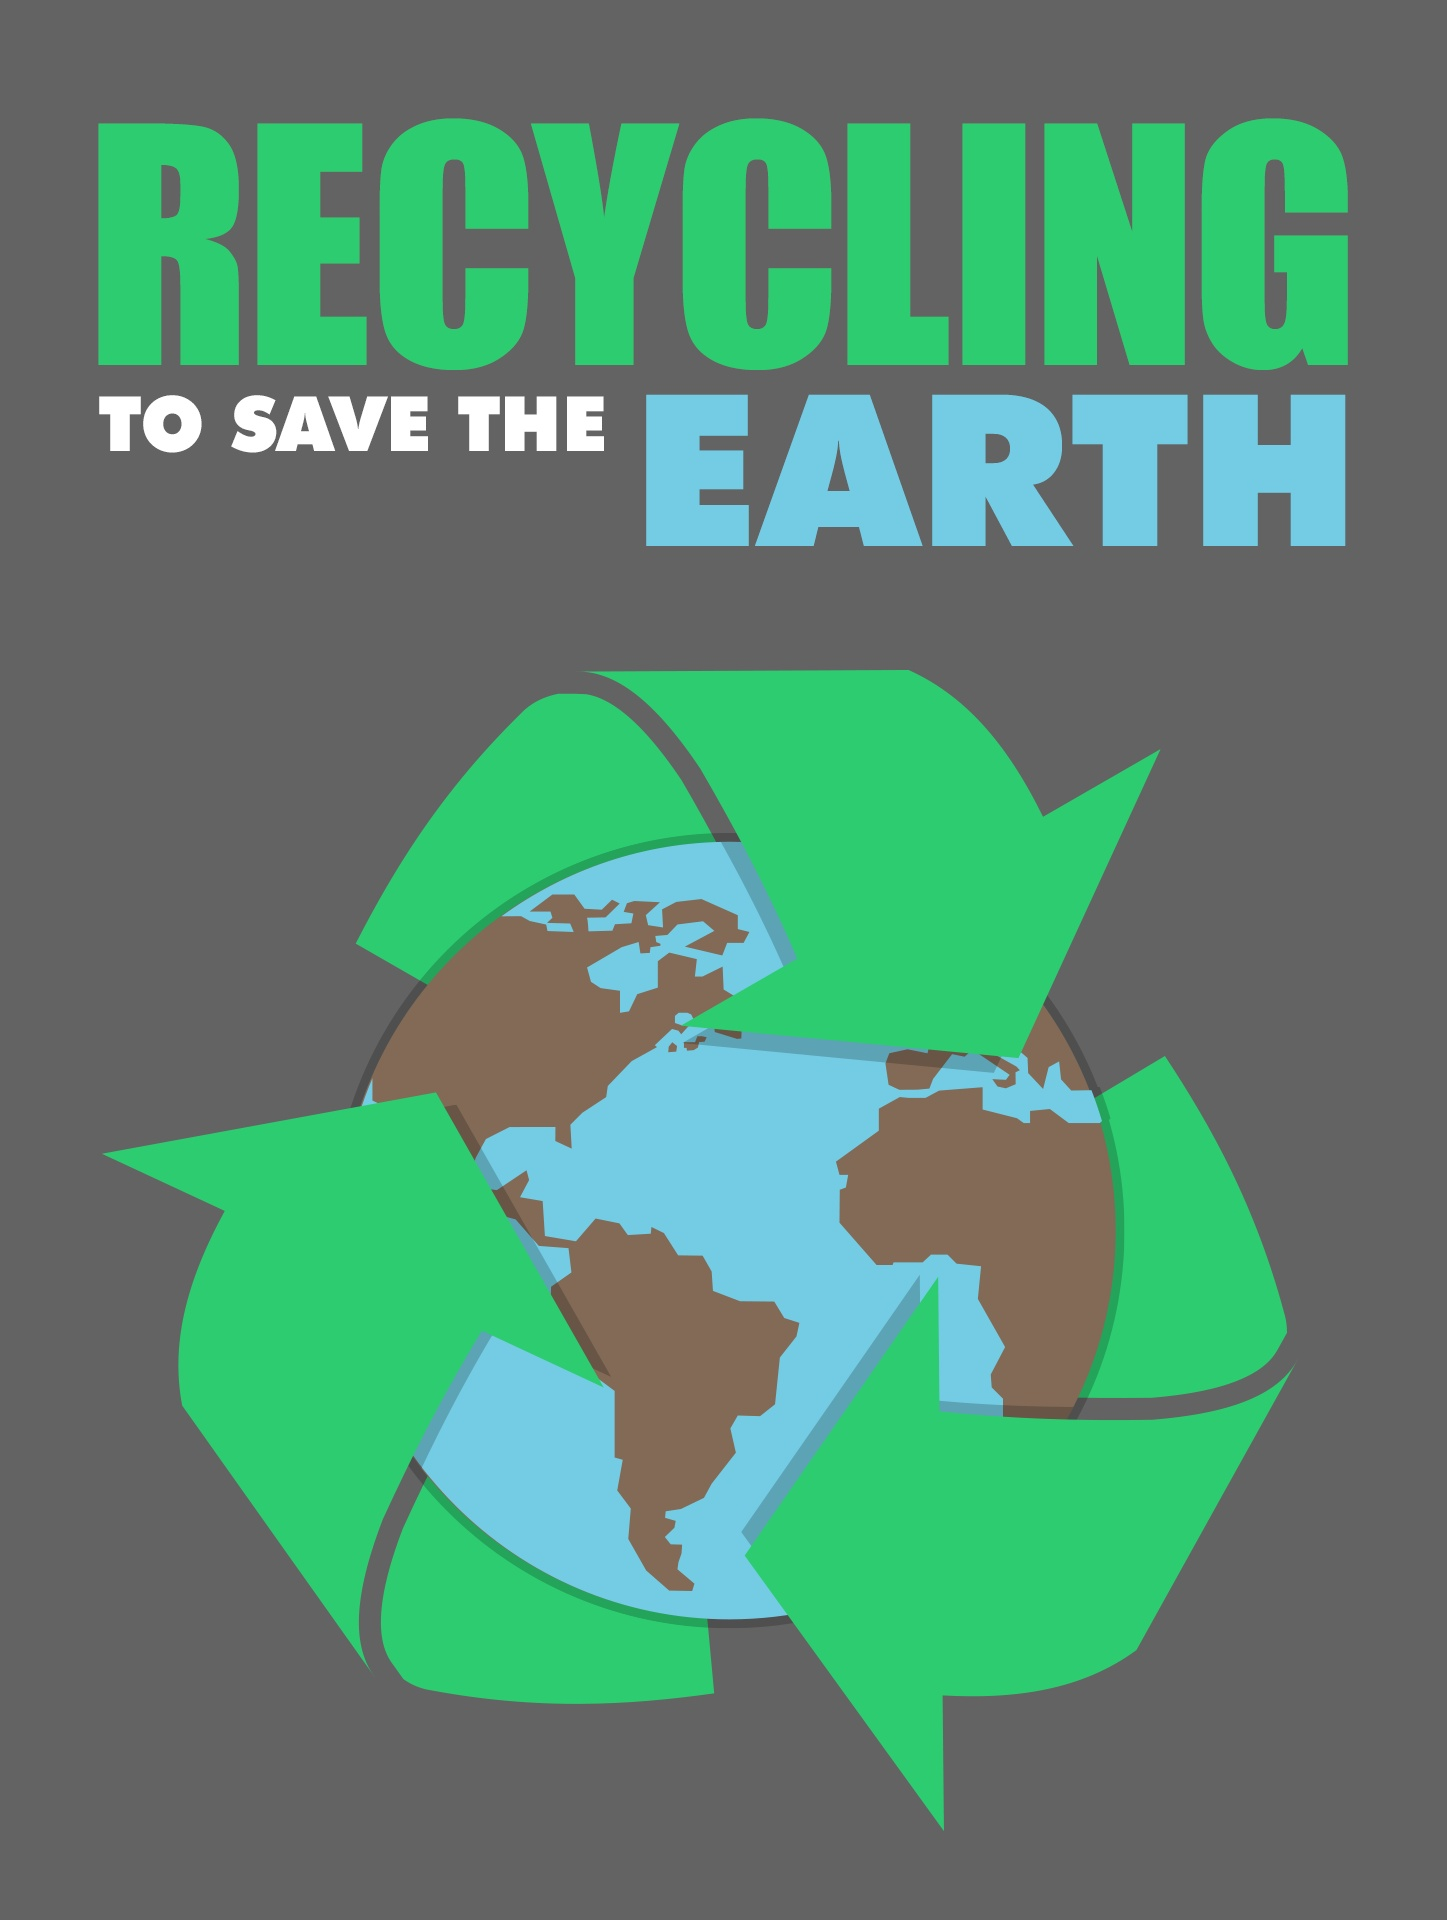 Recycling To Save The Earth